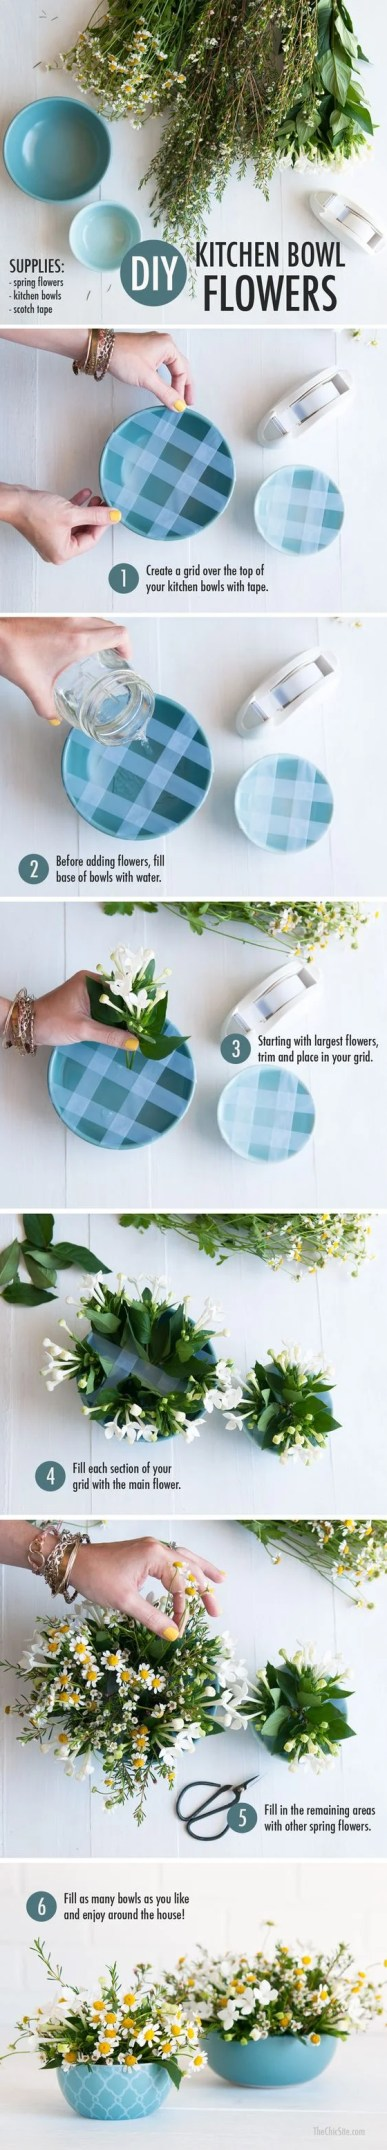 This kitchen bowl flower DIY is sure to impress all your friends!